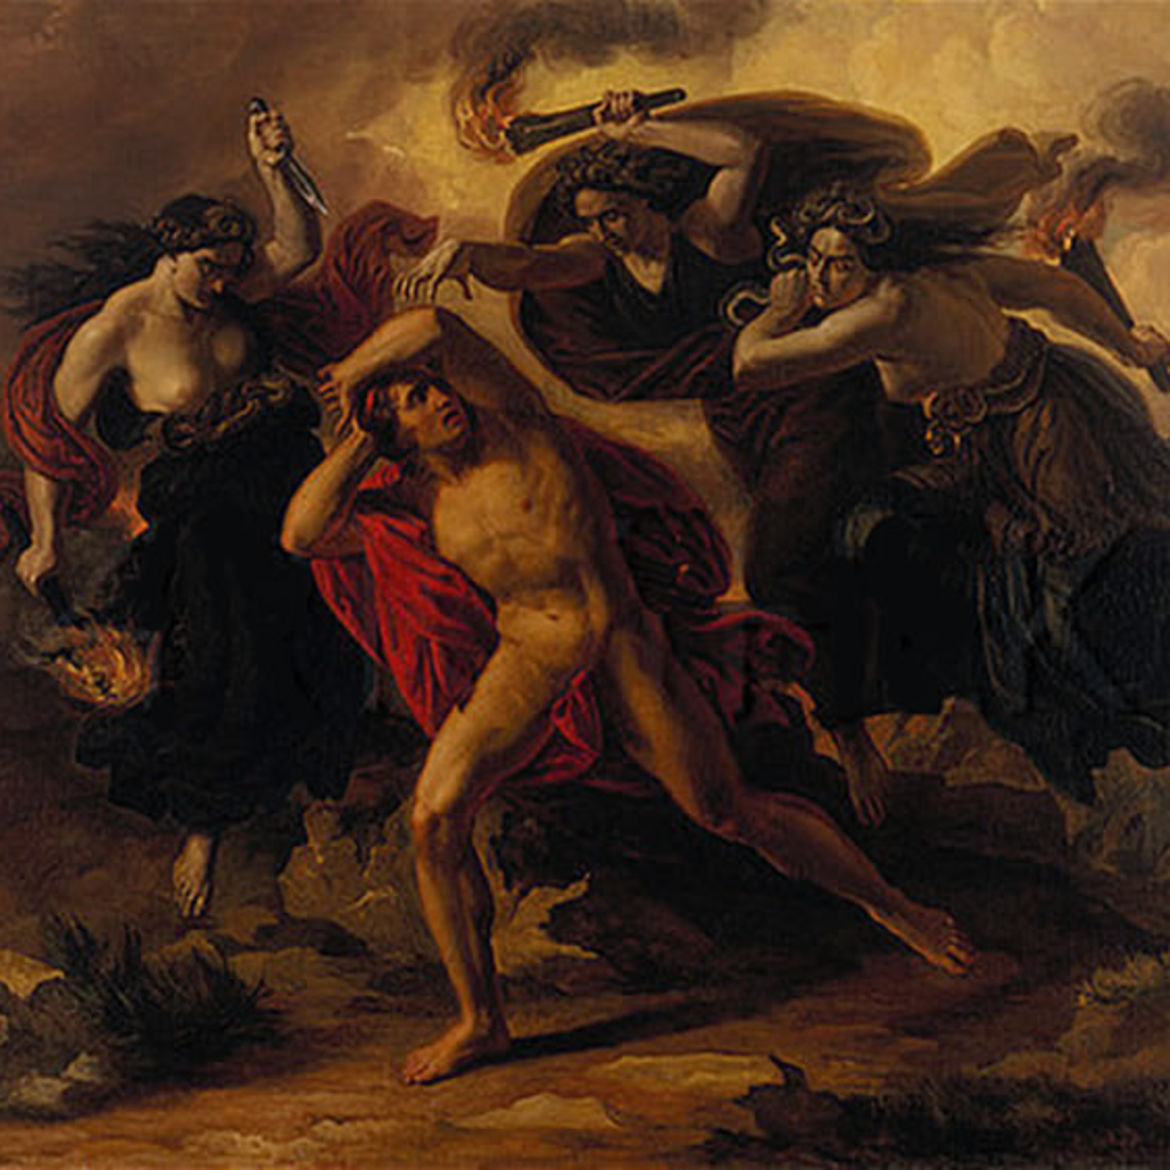 Cover Photo: Carl Rahl, 'Orestes Pursued by the Furies,' c. 1852